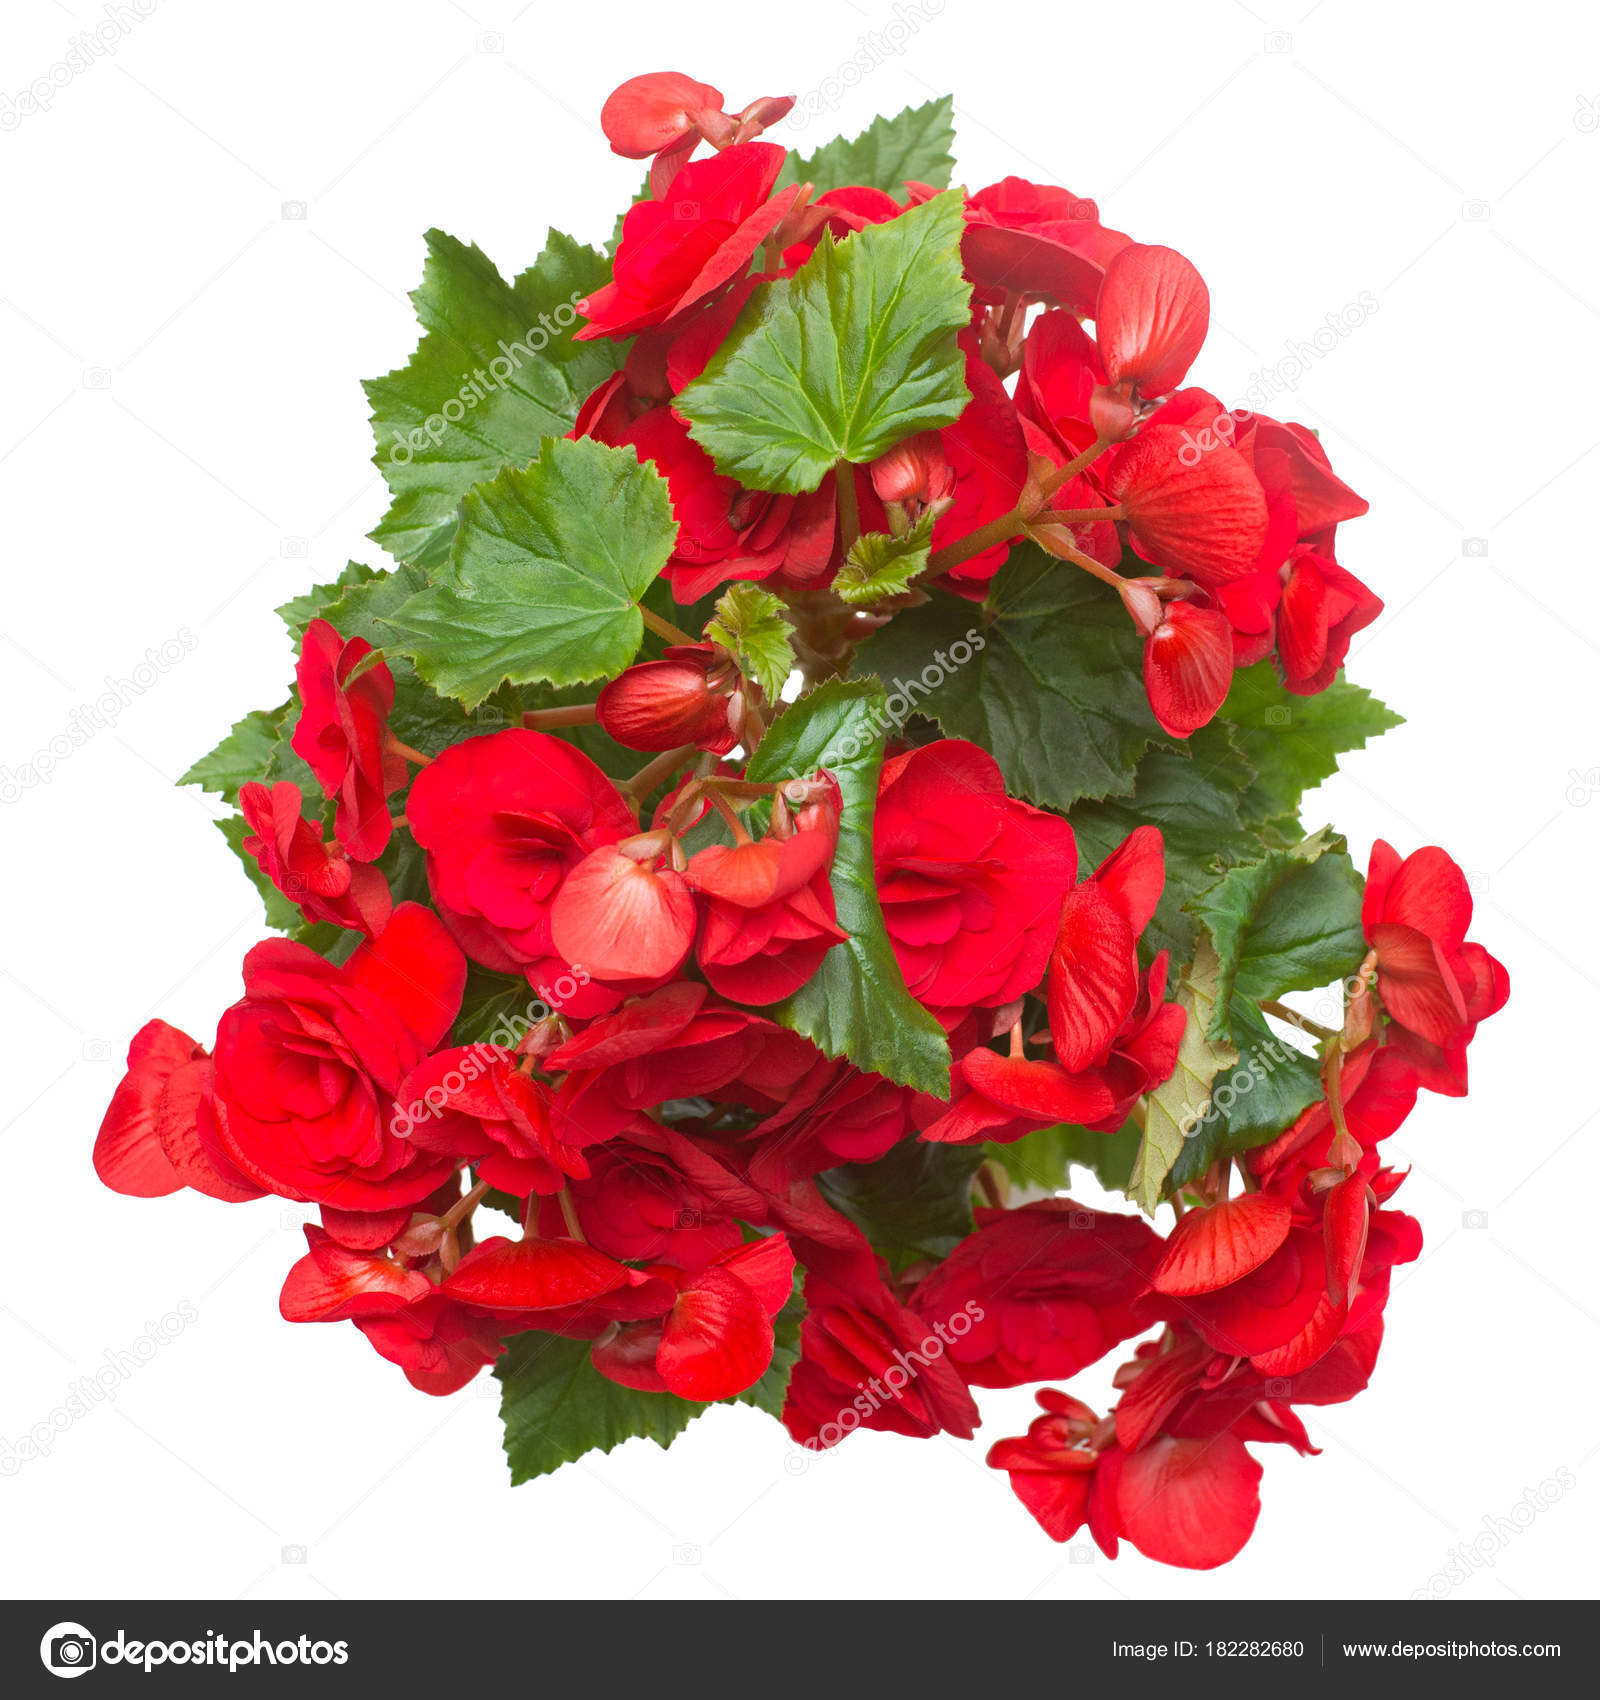 Begonia Red Flowers Isolated White Background Flat Lay Top View Stock Photo C Flowerstudio 182282680